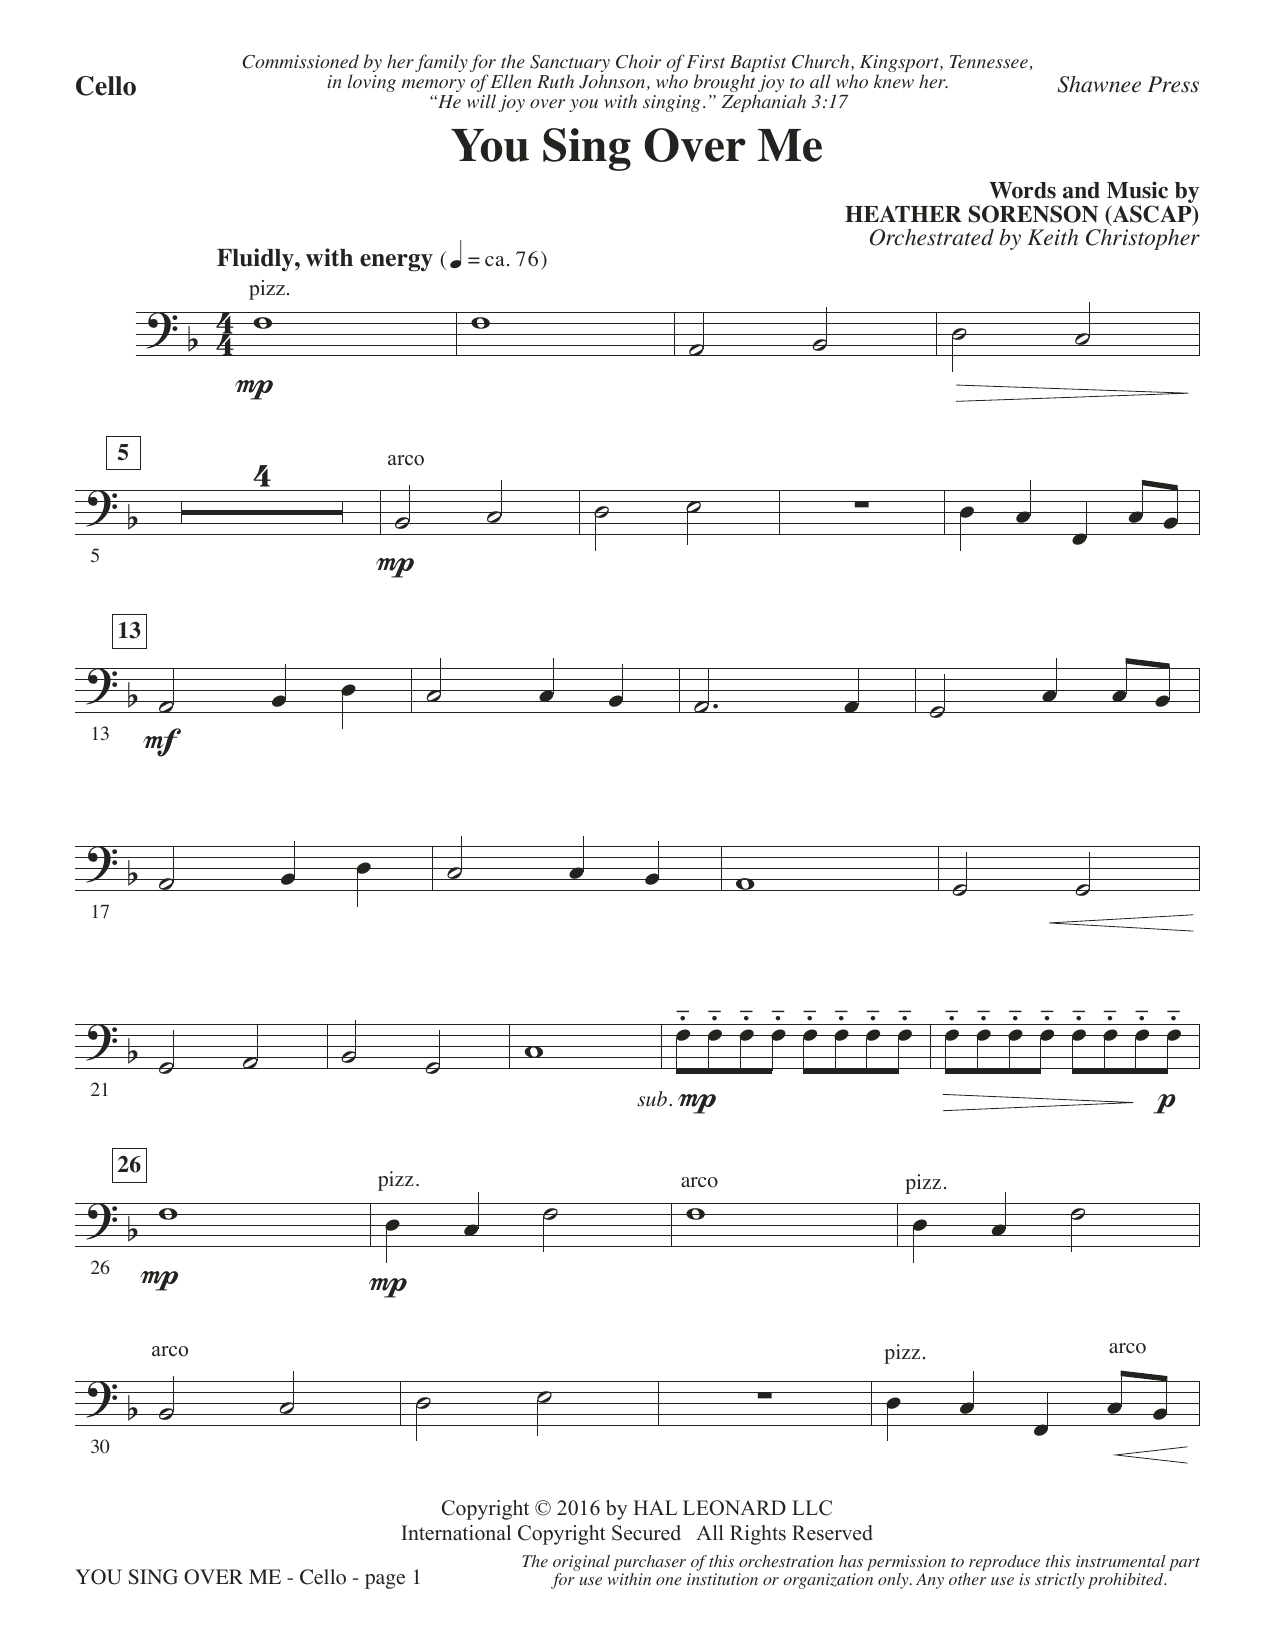 You Sing Over Me - Cello Sheet Music